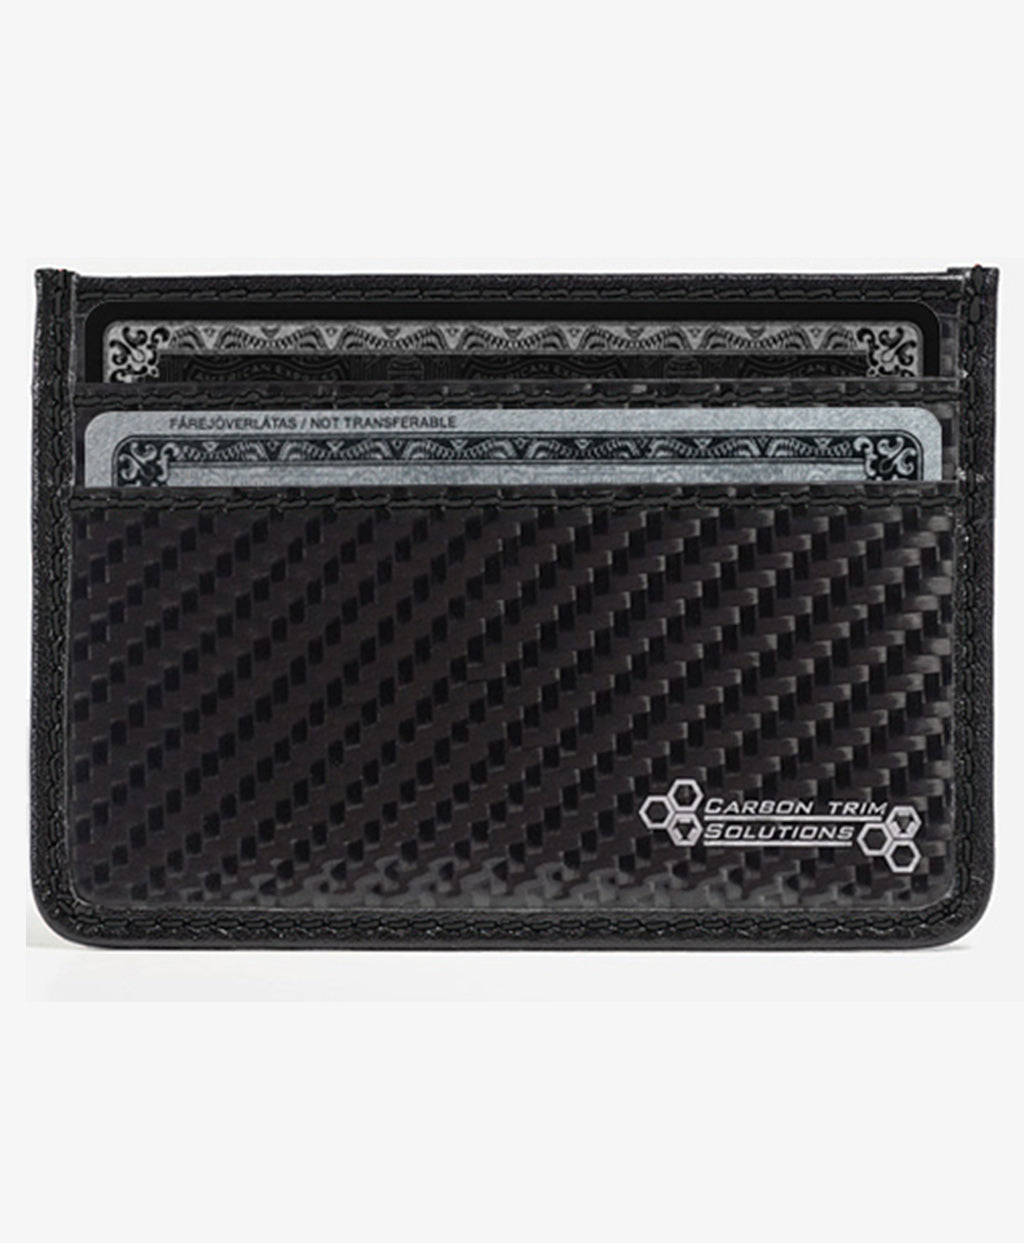 Real Carbon Fiber Cardholder Wallet by FlexCarbon™